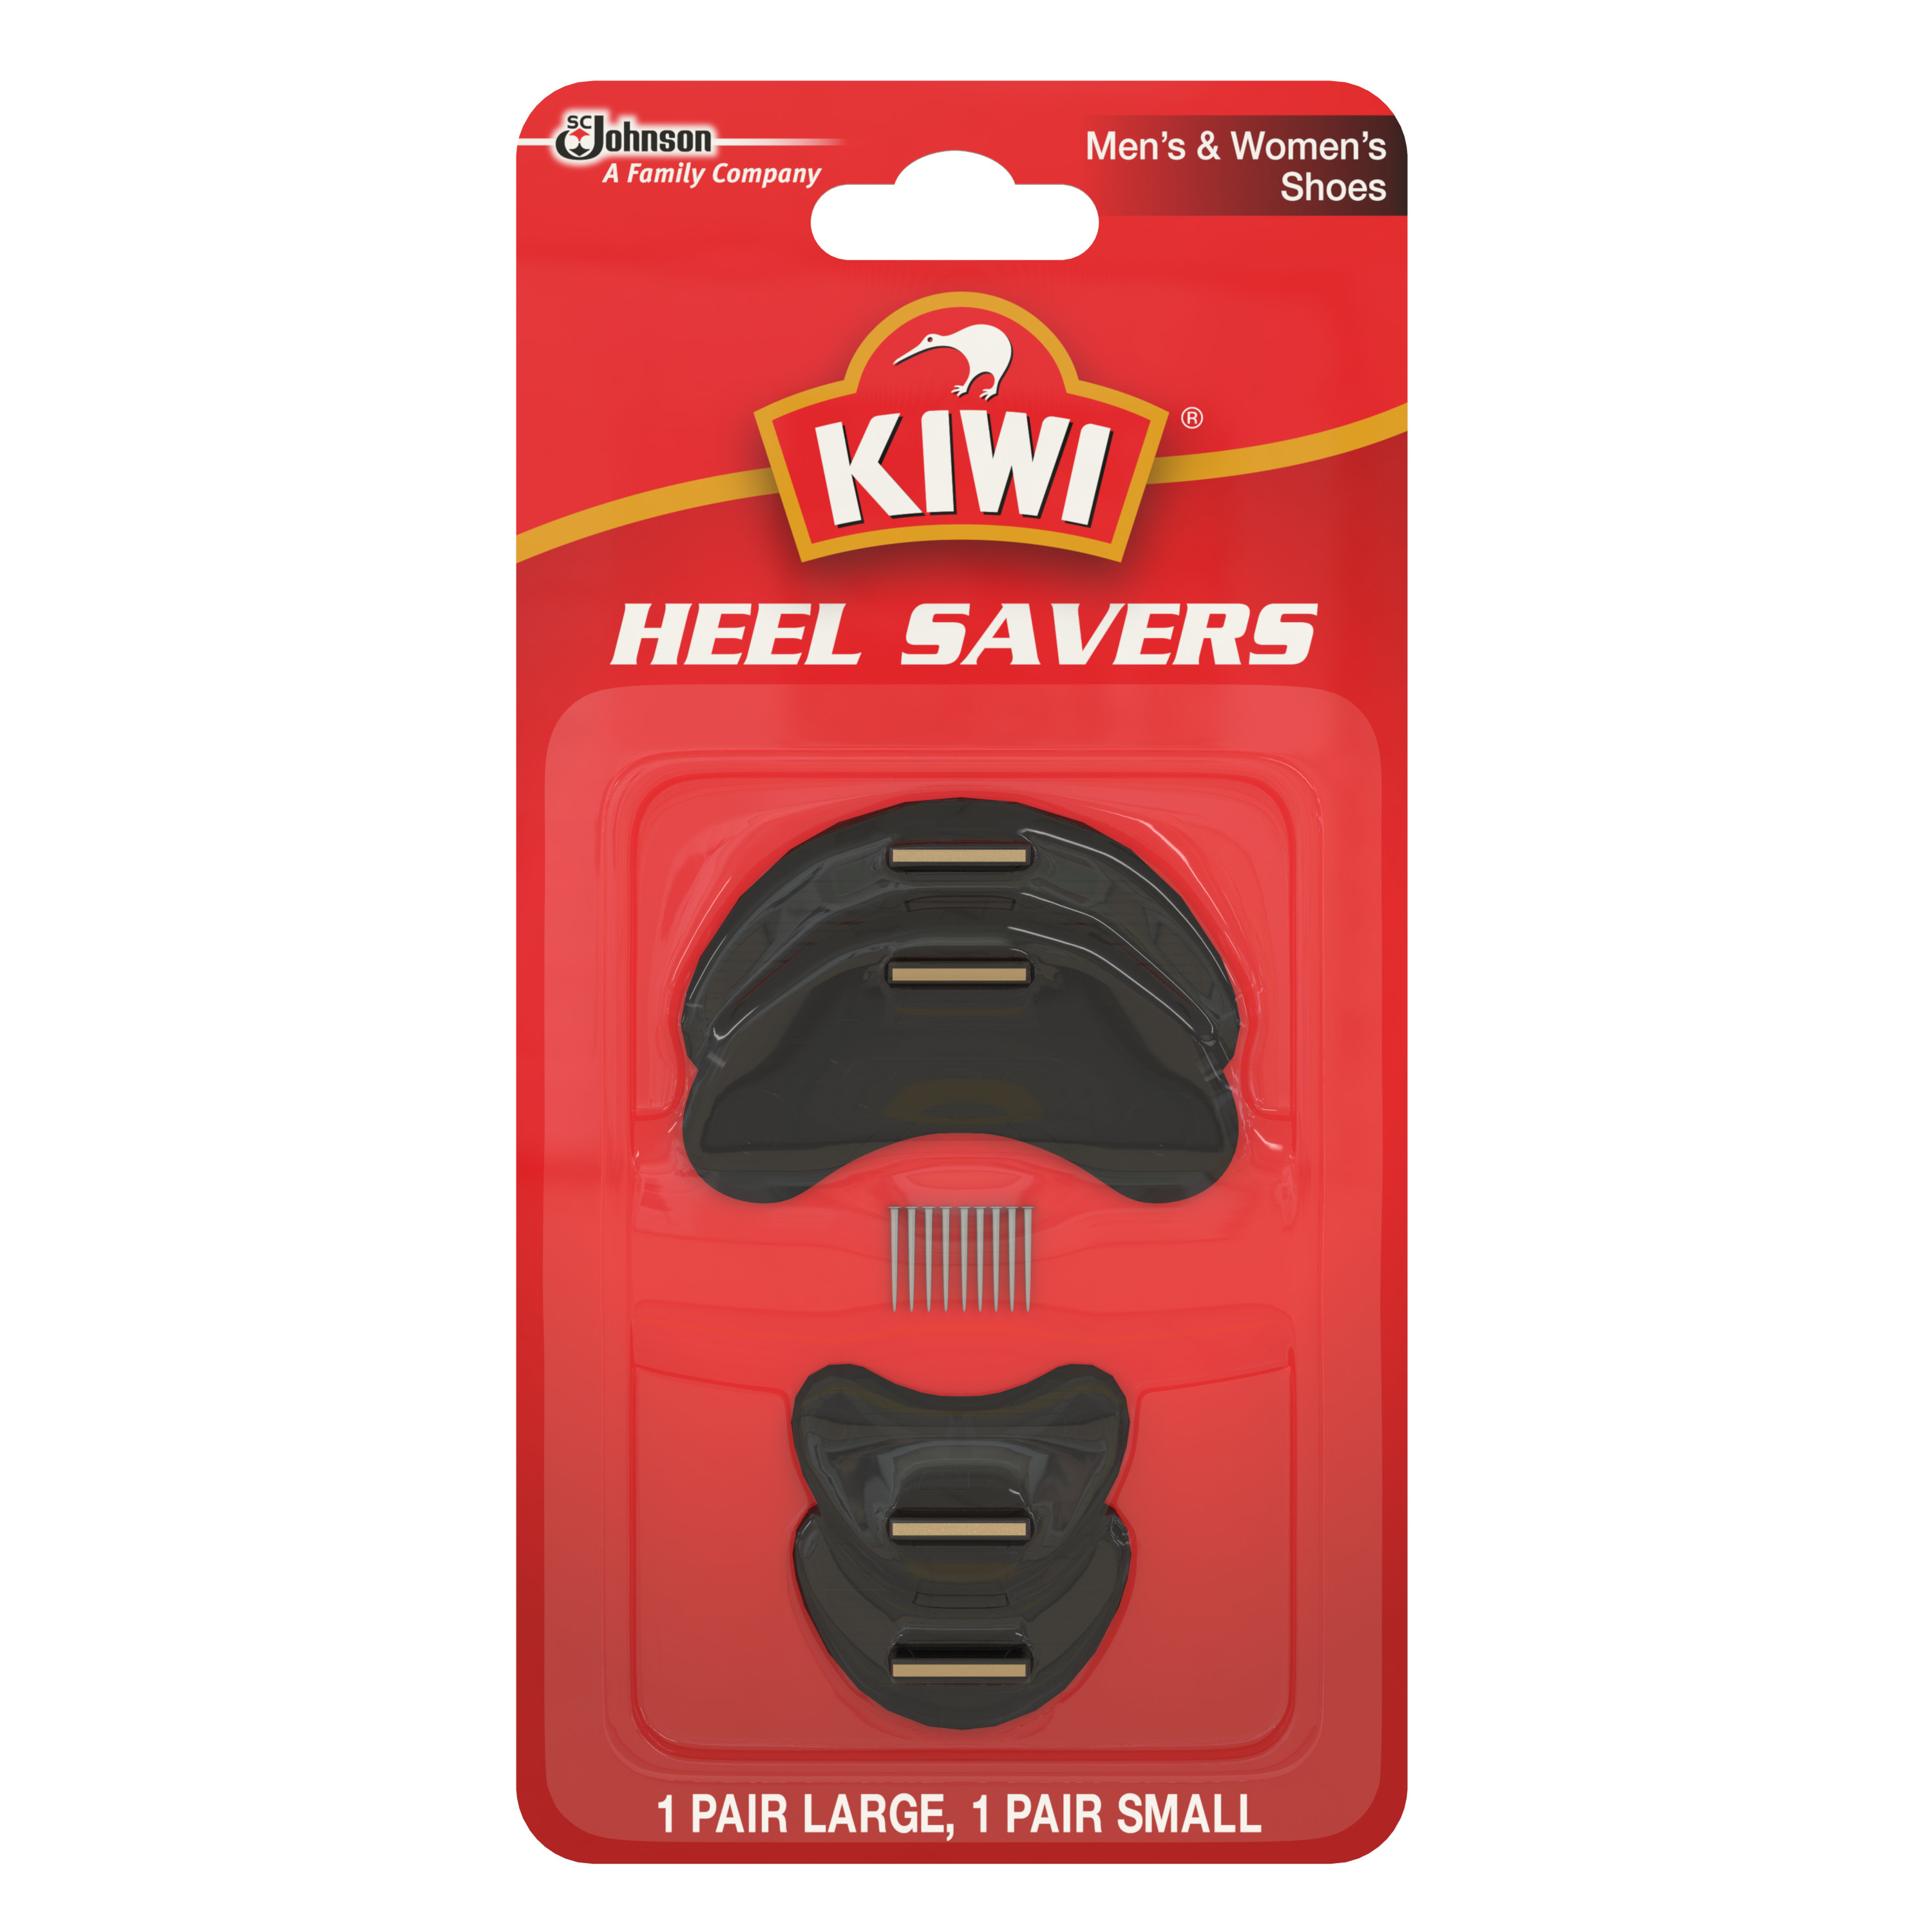 KIWI Heel Savers